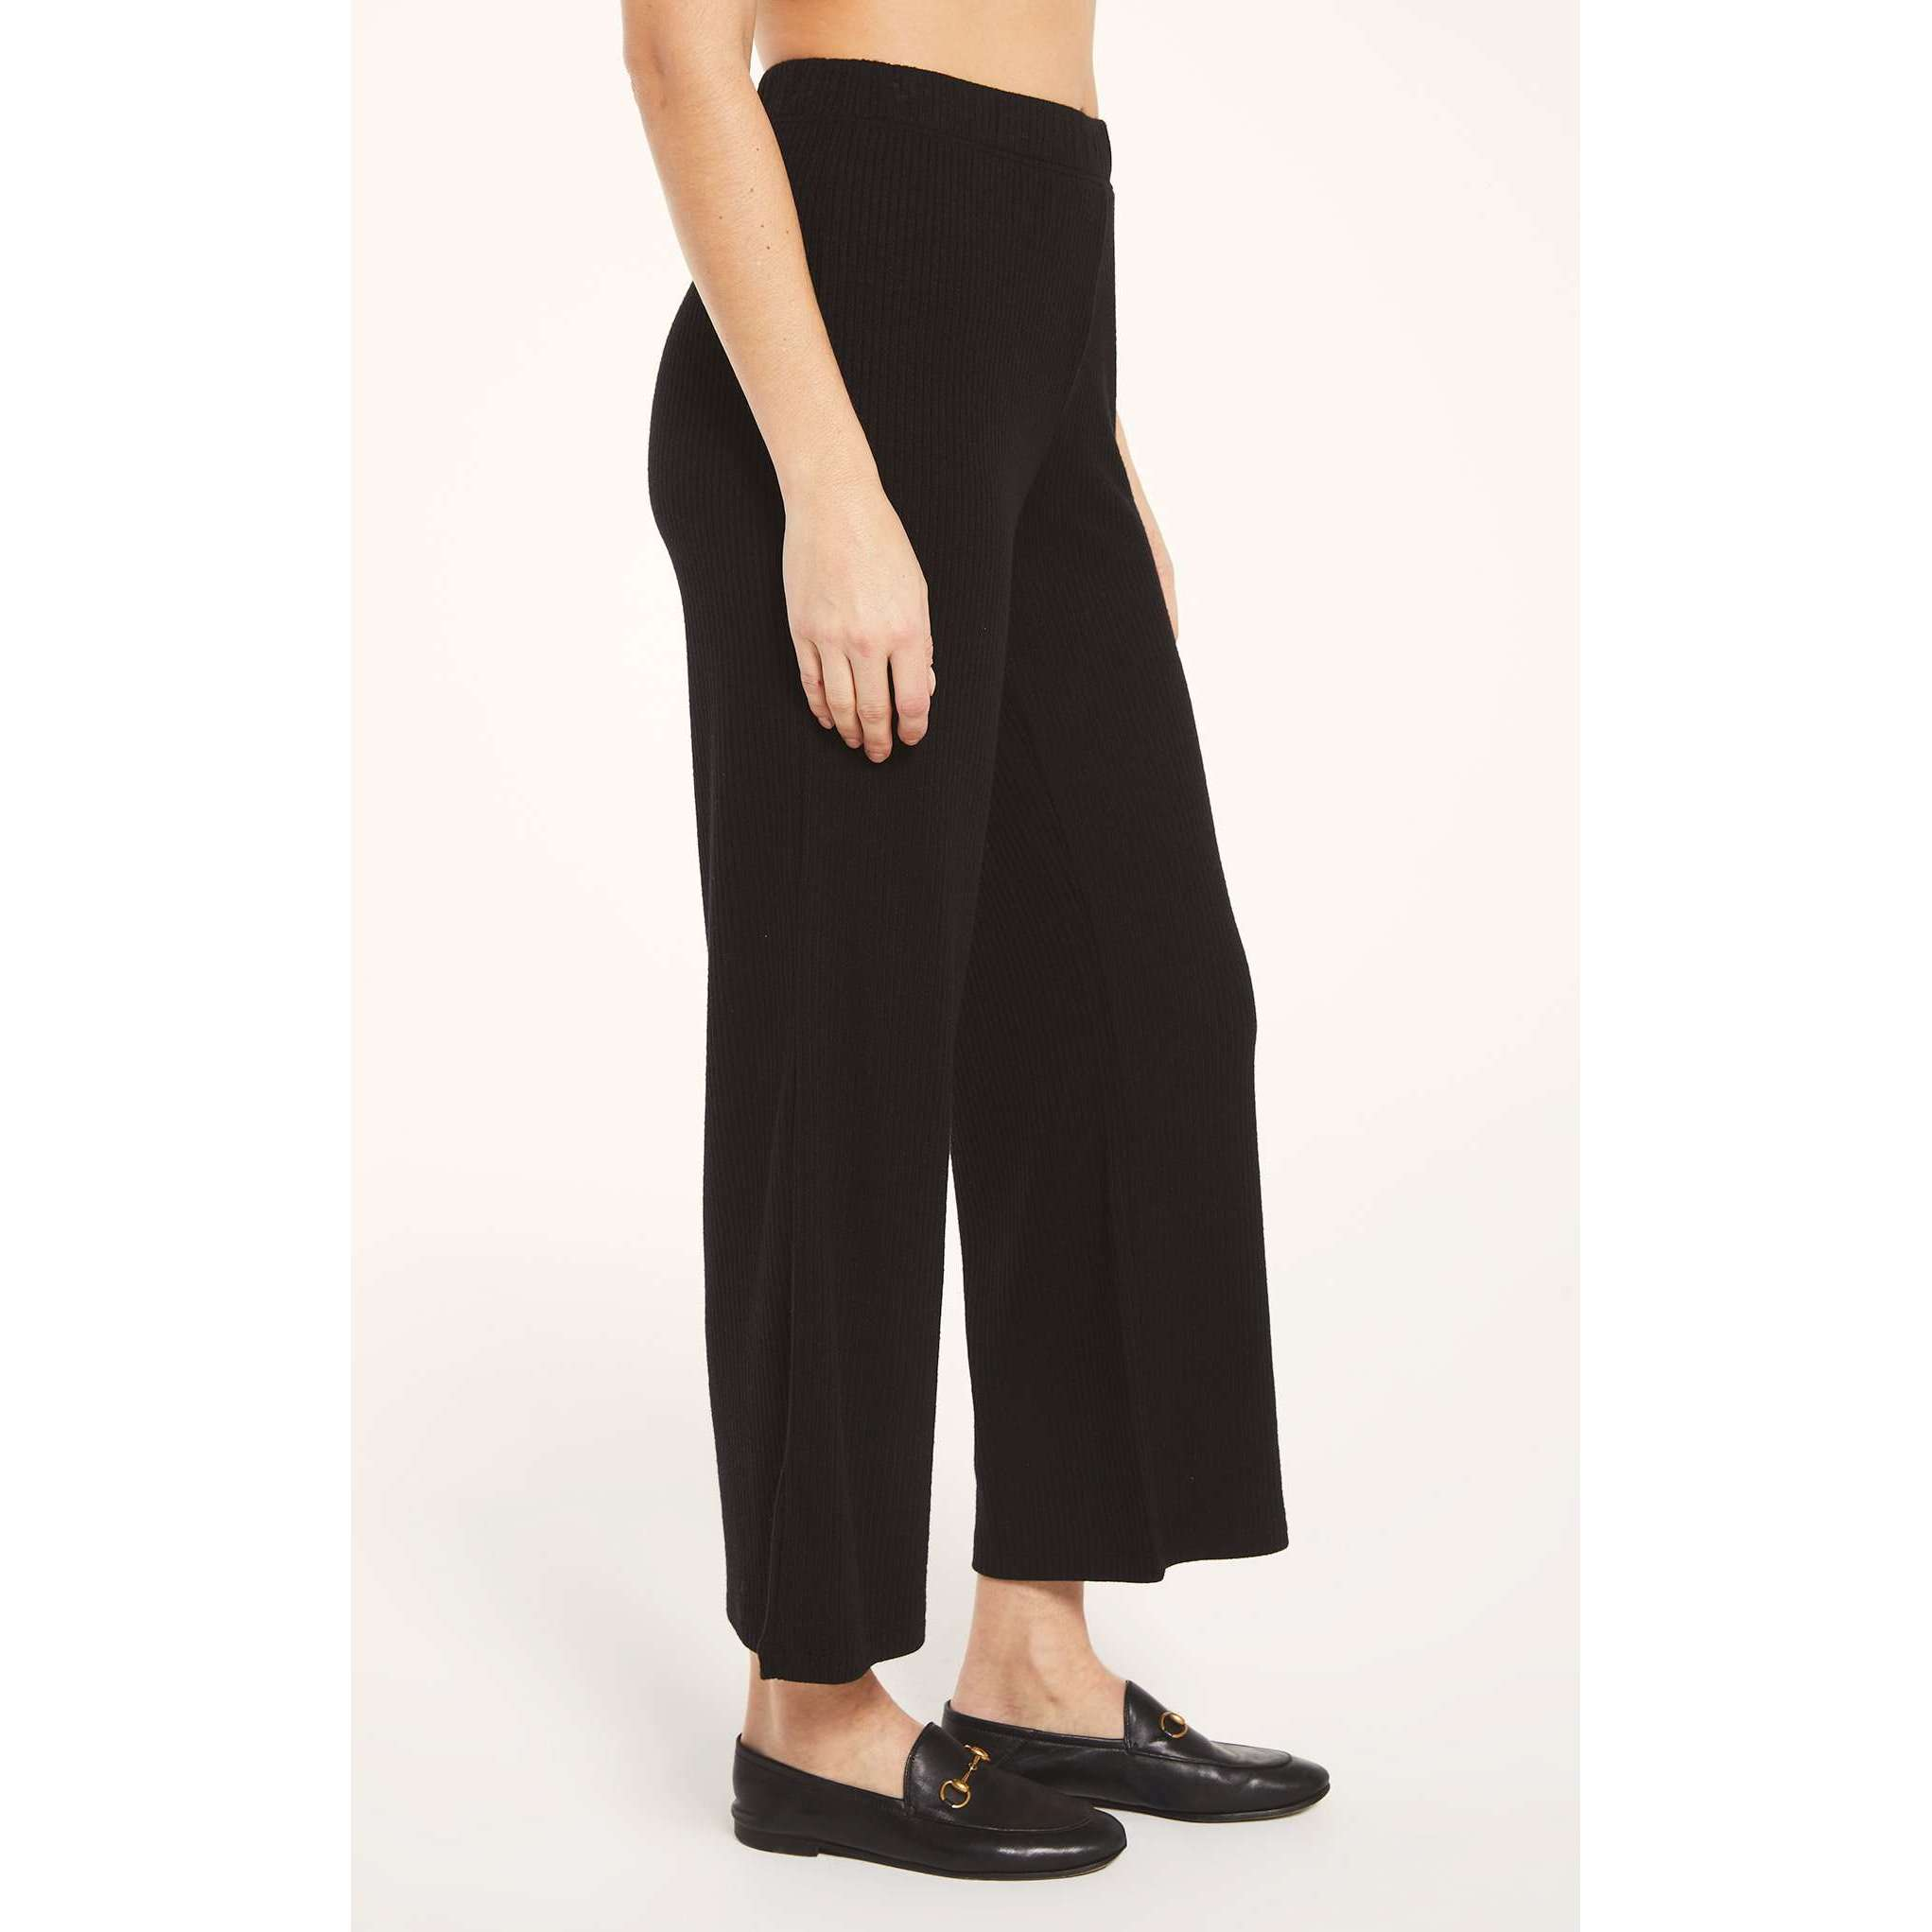 8.28 Boutique:Z-Supply,Z-Supply Gerri Rib Pant,Bottoms